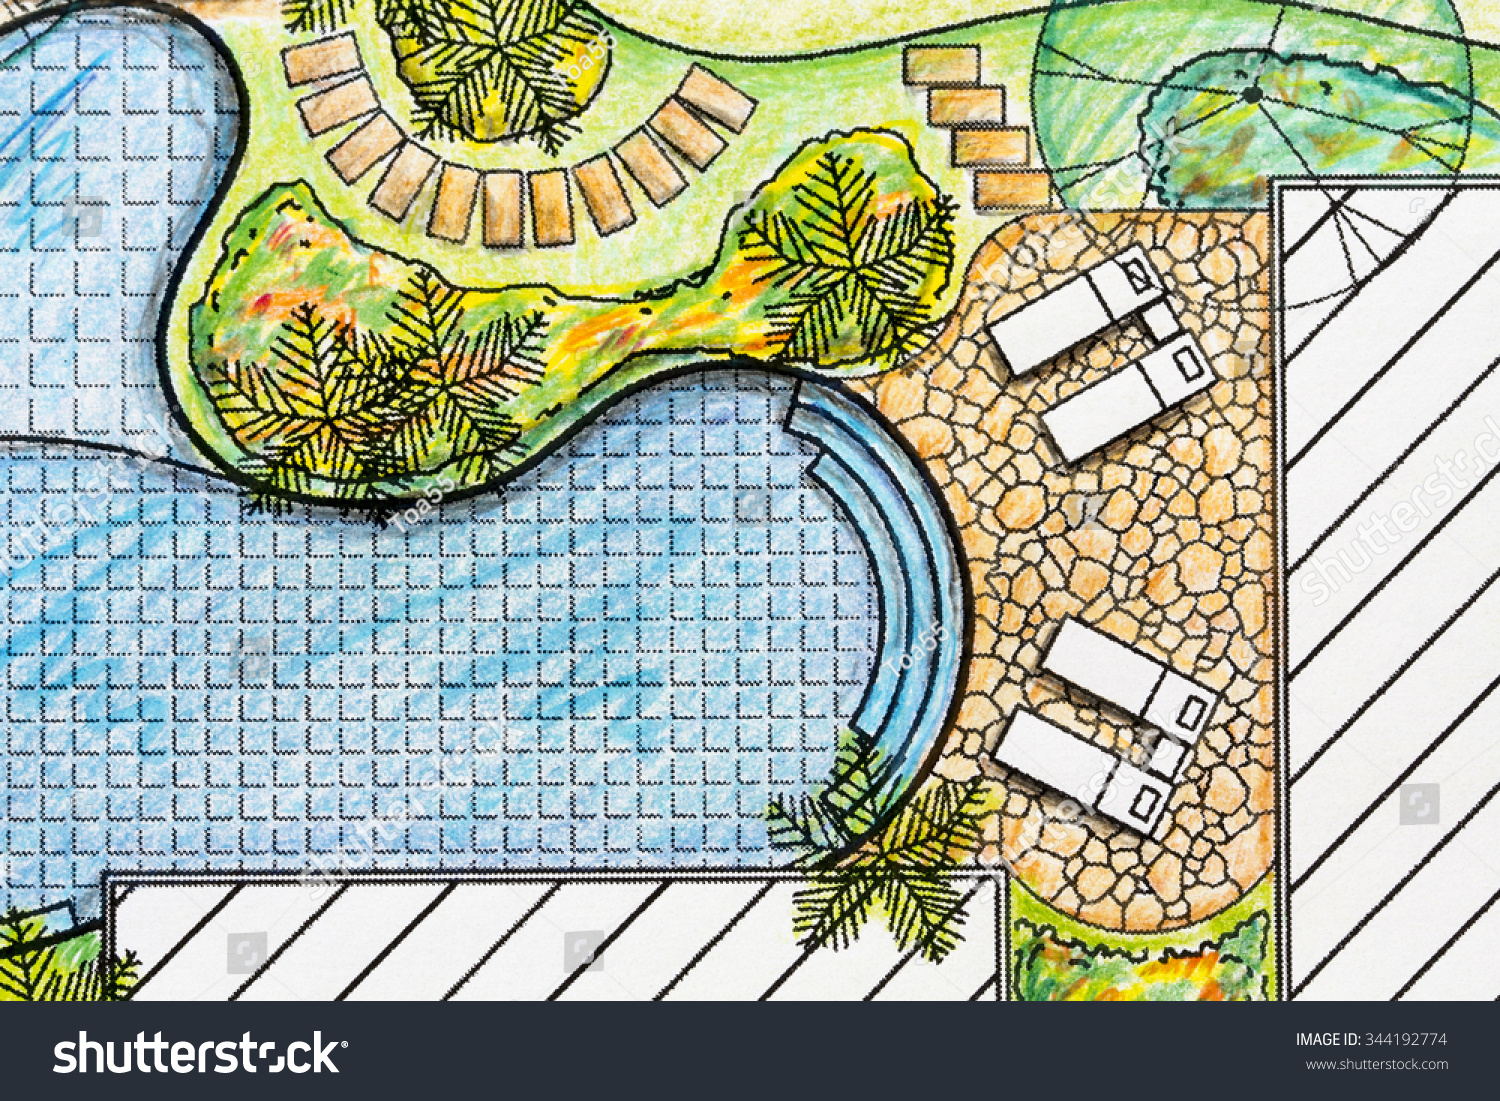 Landscape architect design backyard plan villa stock for Villa landscape design